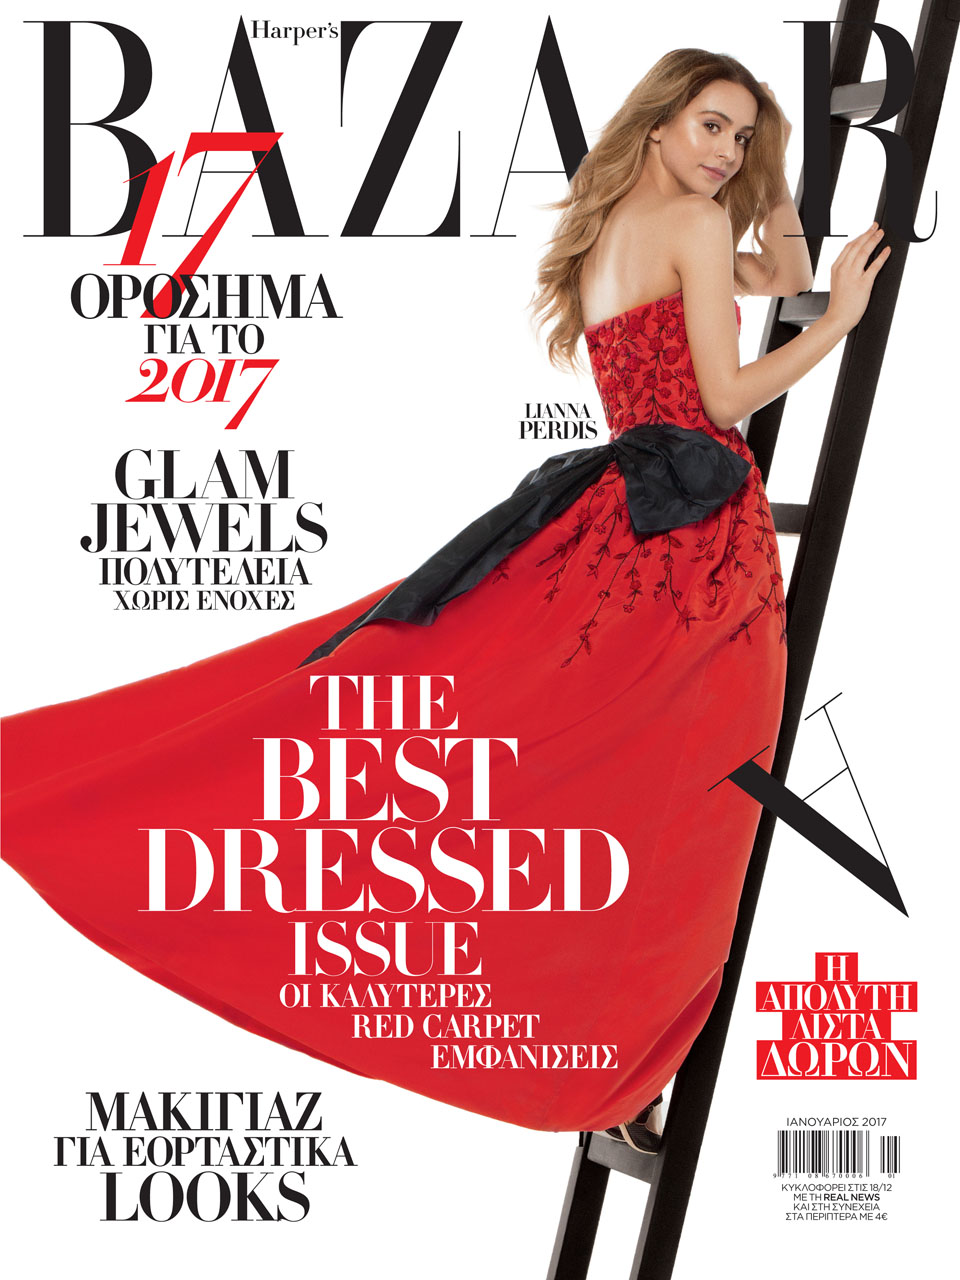 Dazzling Liana Perdis in a festive mood on the cover of Harper's Bazaar.